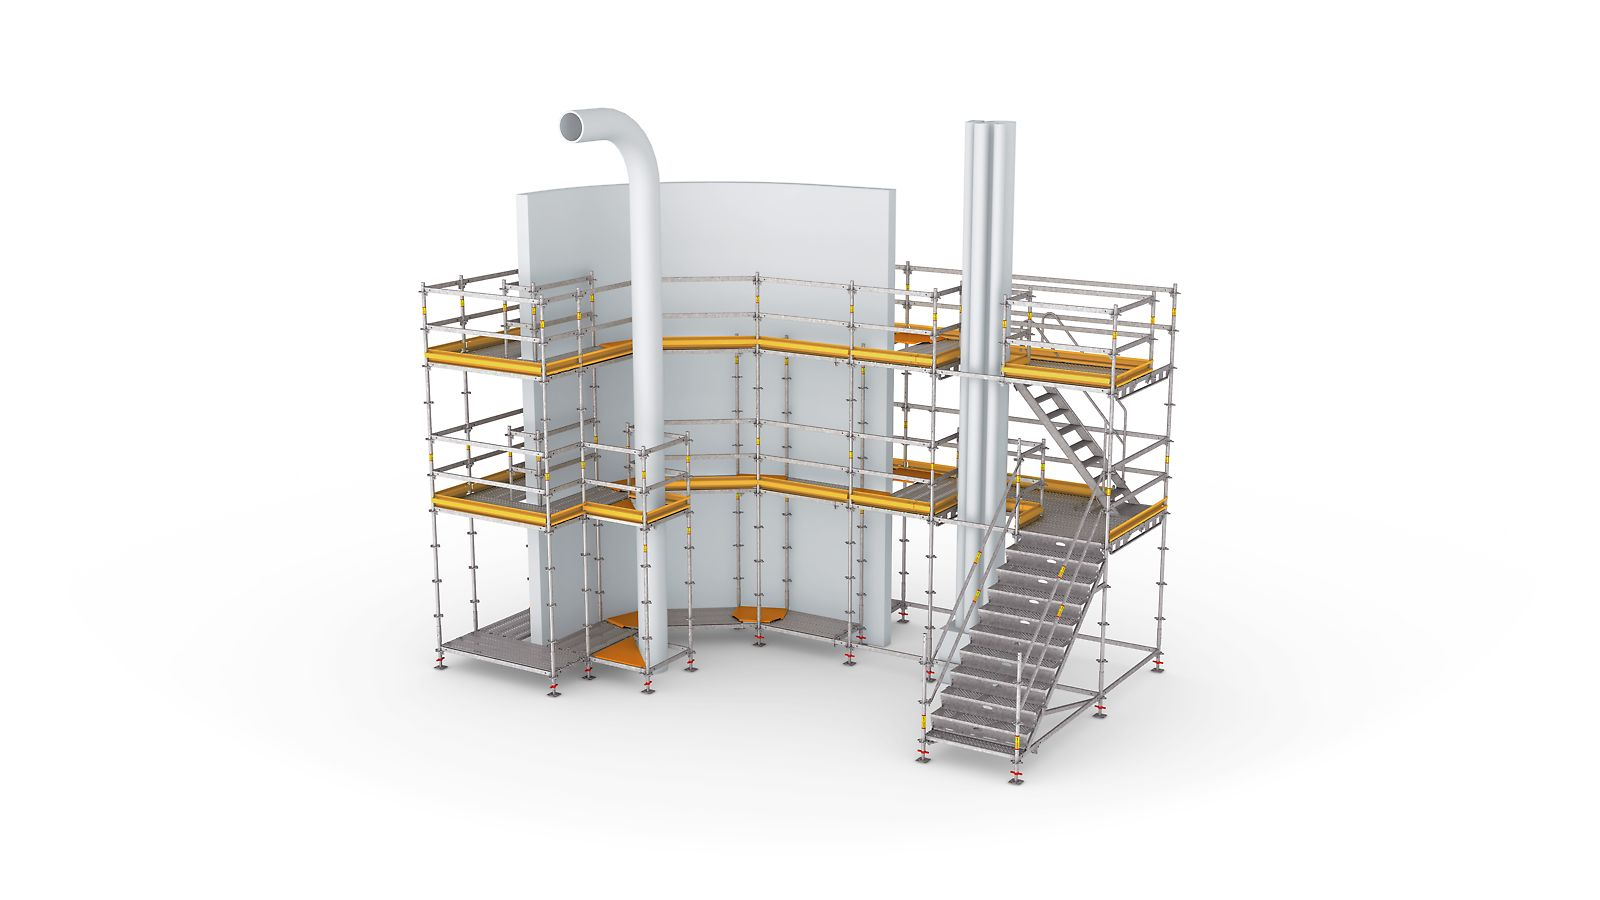 PERI UP Flex Modular Working Scaffold: Extremely flexible work scaffold for a wide range of applications.